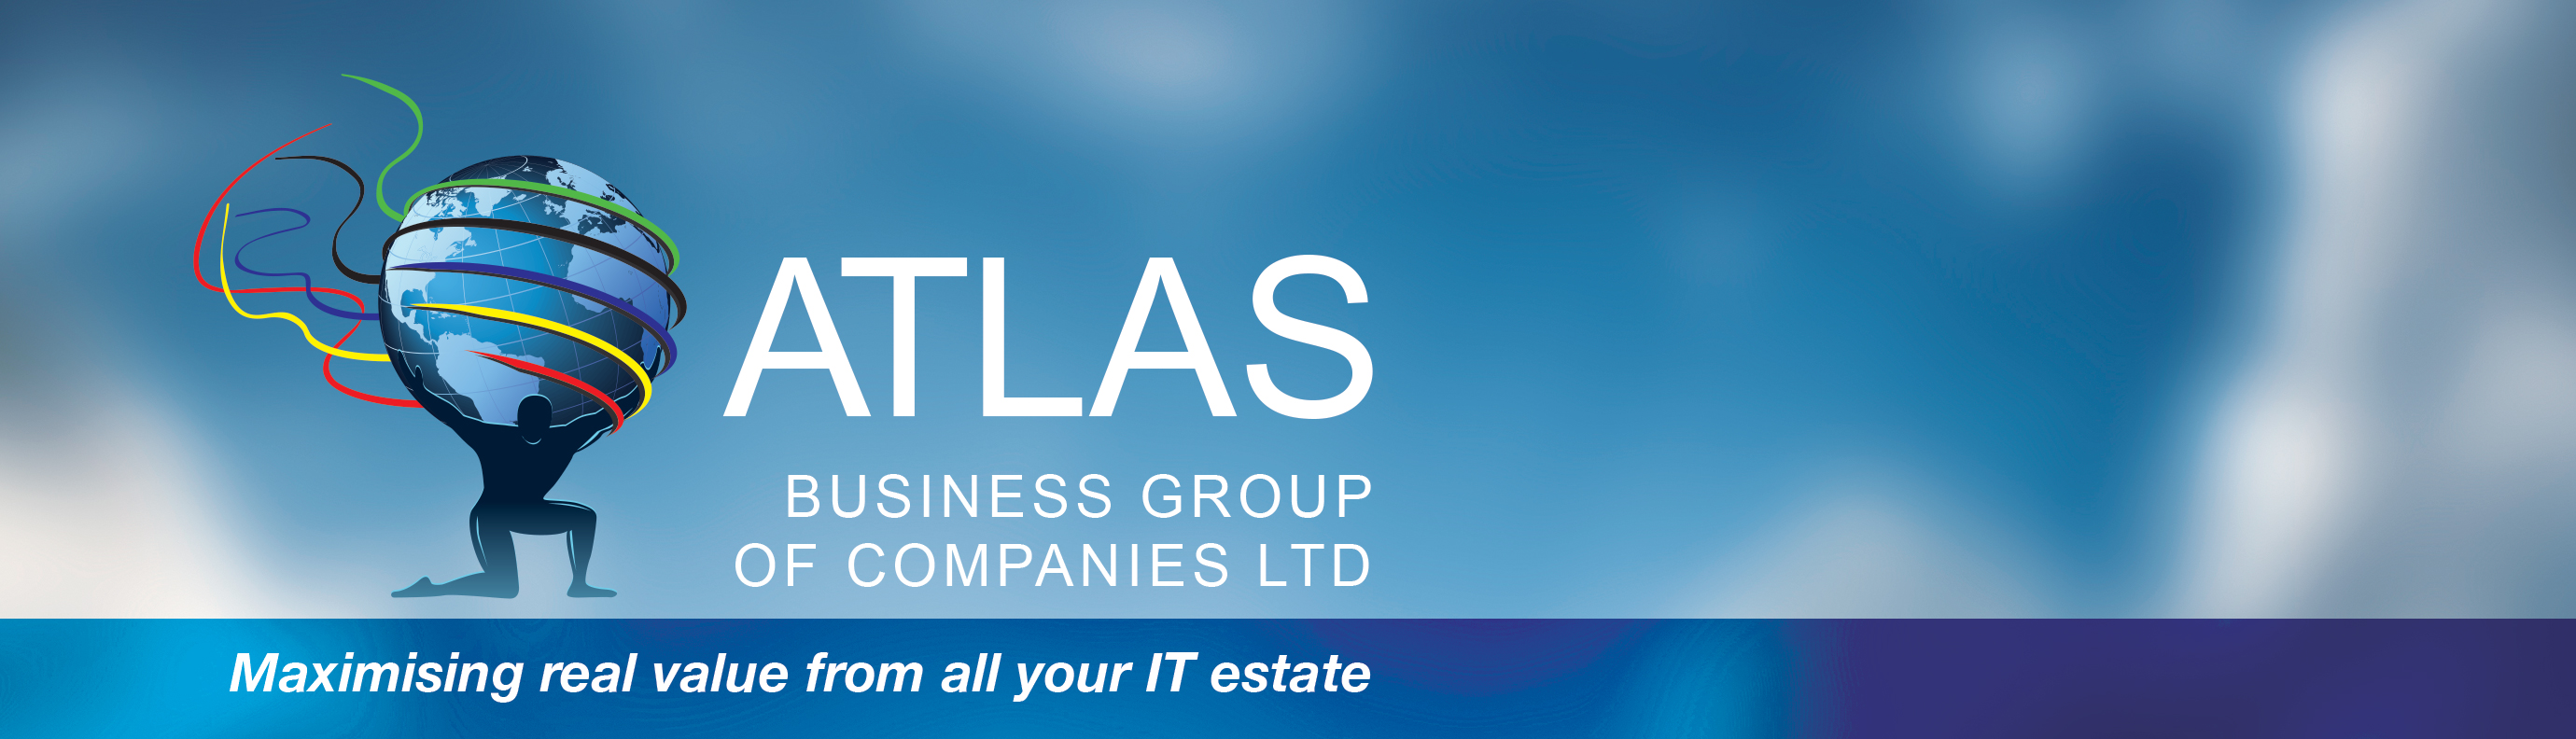 Atlas Business Group